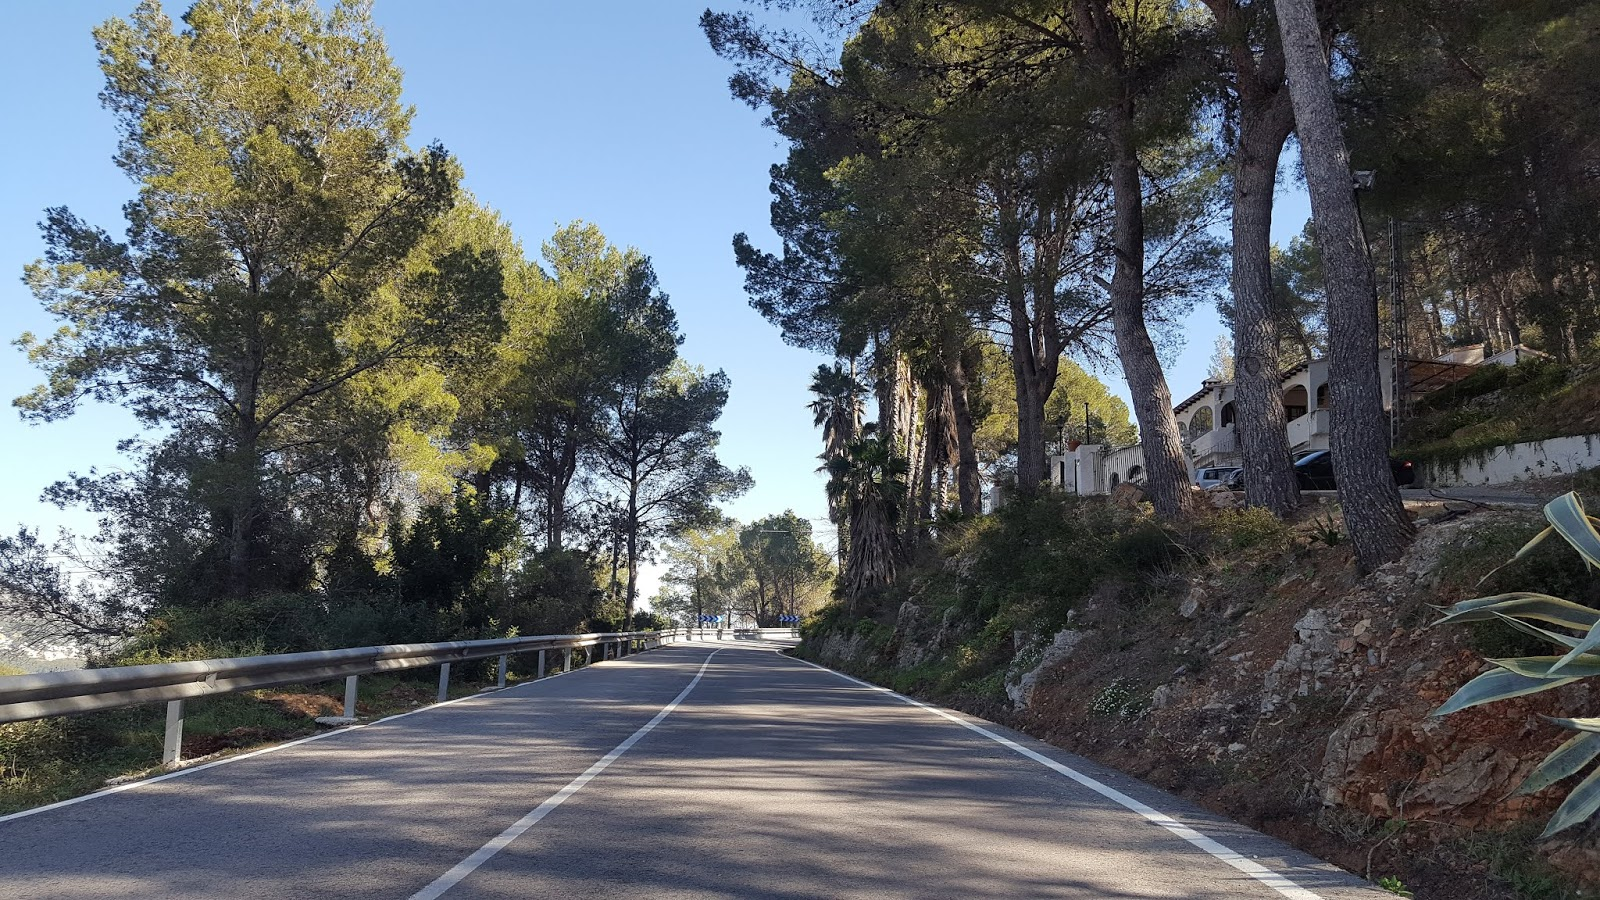 Initial ramps on north side of Coll de Rates